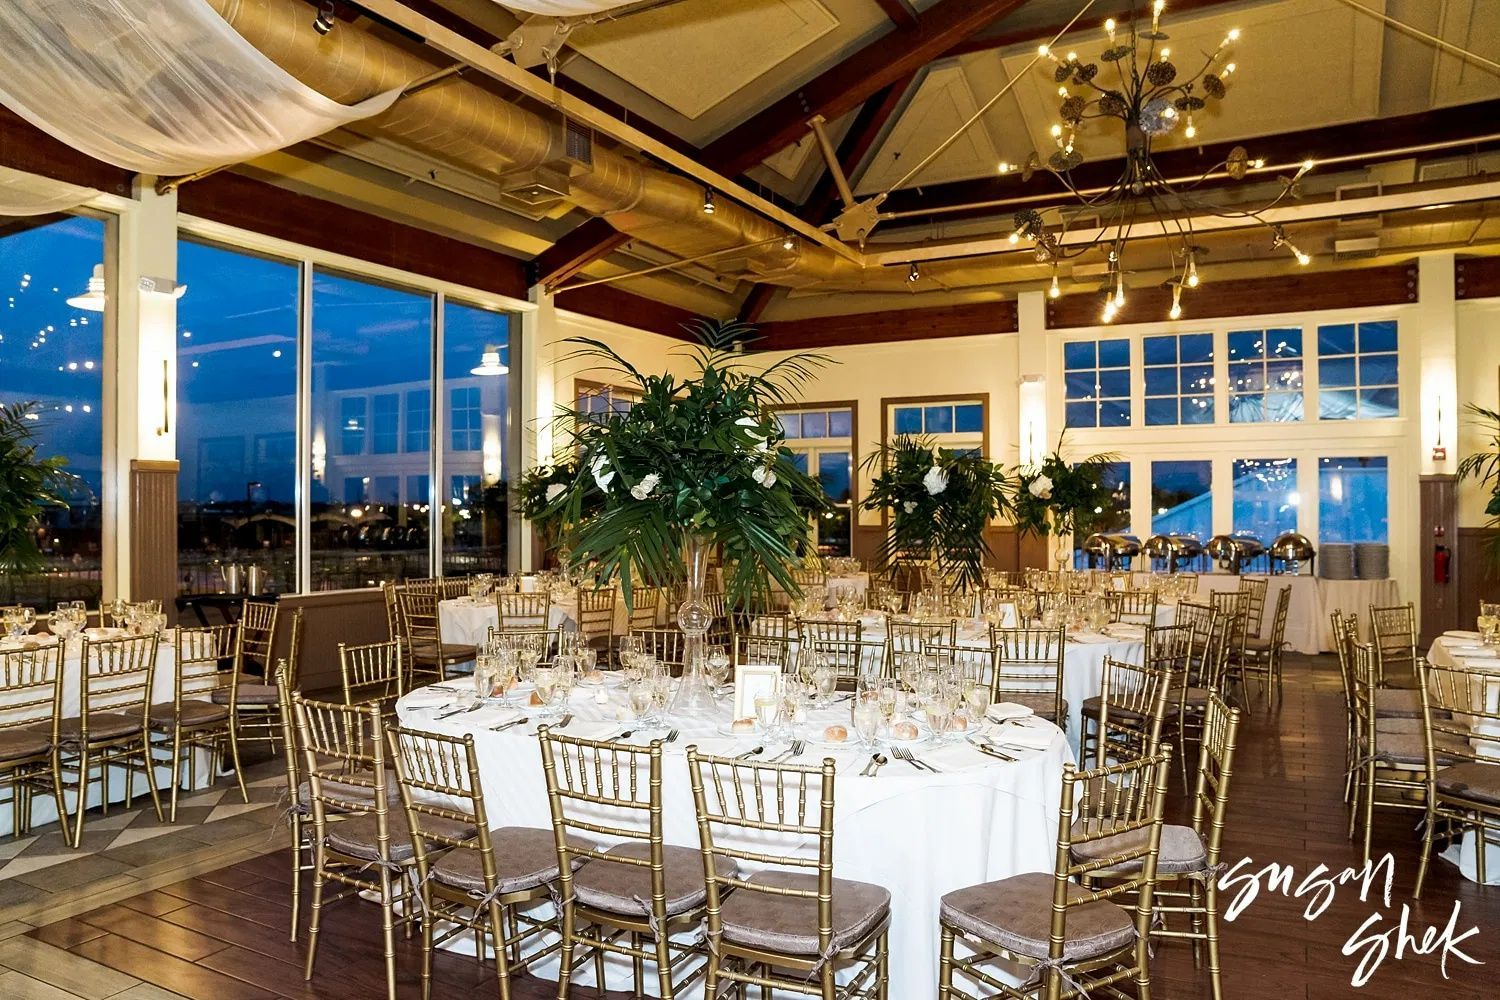 Liberty House Wedding In Jersey City Nj By Susan Shek Photography In 2020 Liberty House Beautiful French Doors Jersey City